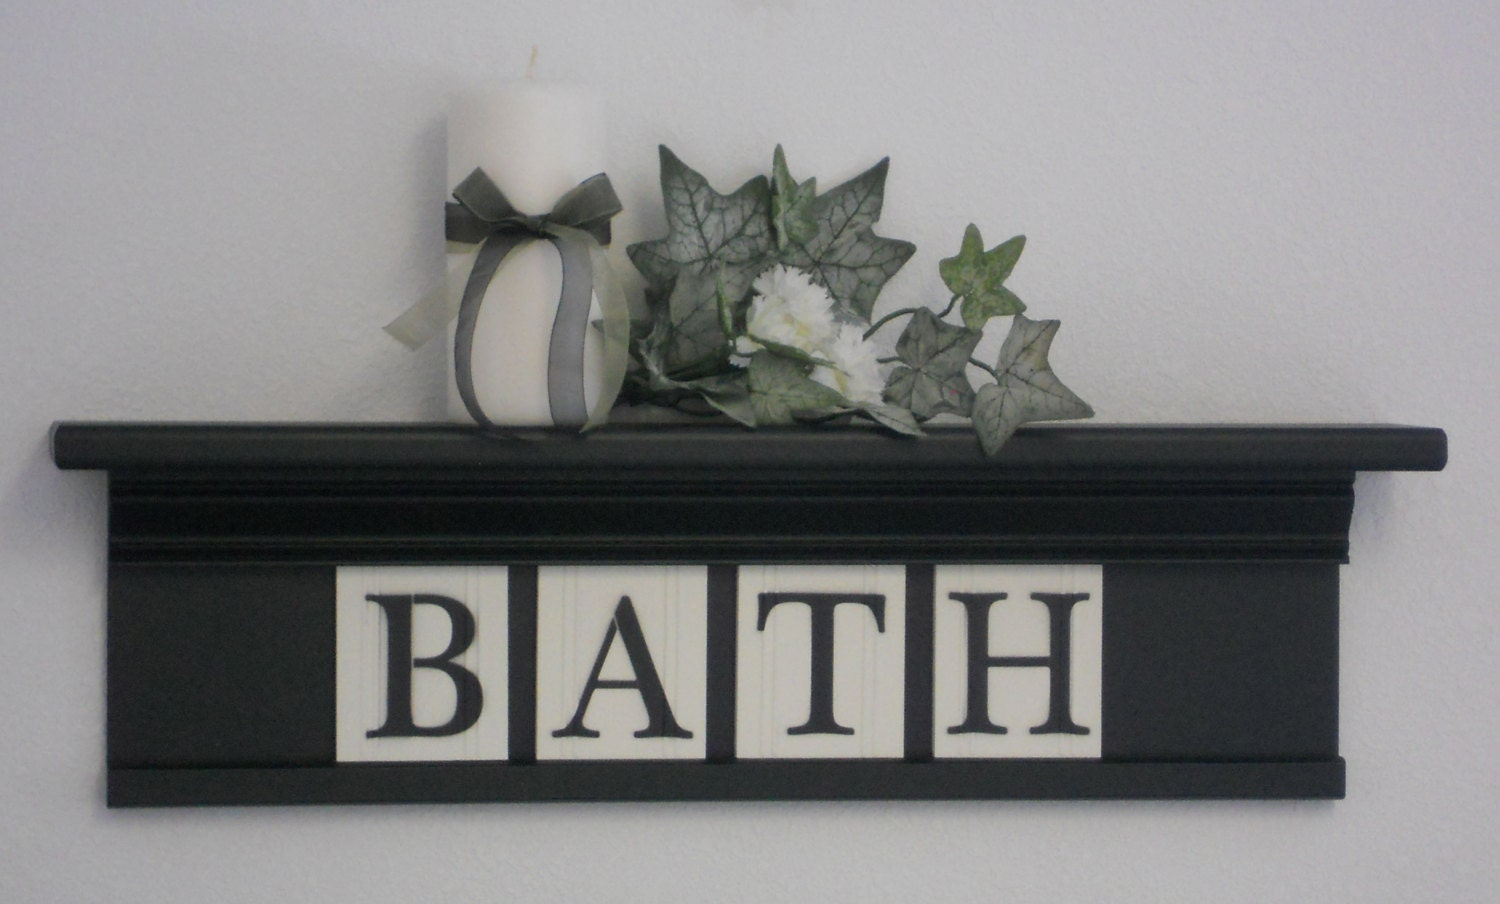 Wall Shelf Home Decor : Bath shelf wall home decor black wooden